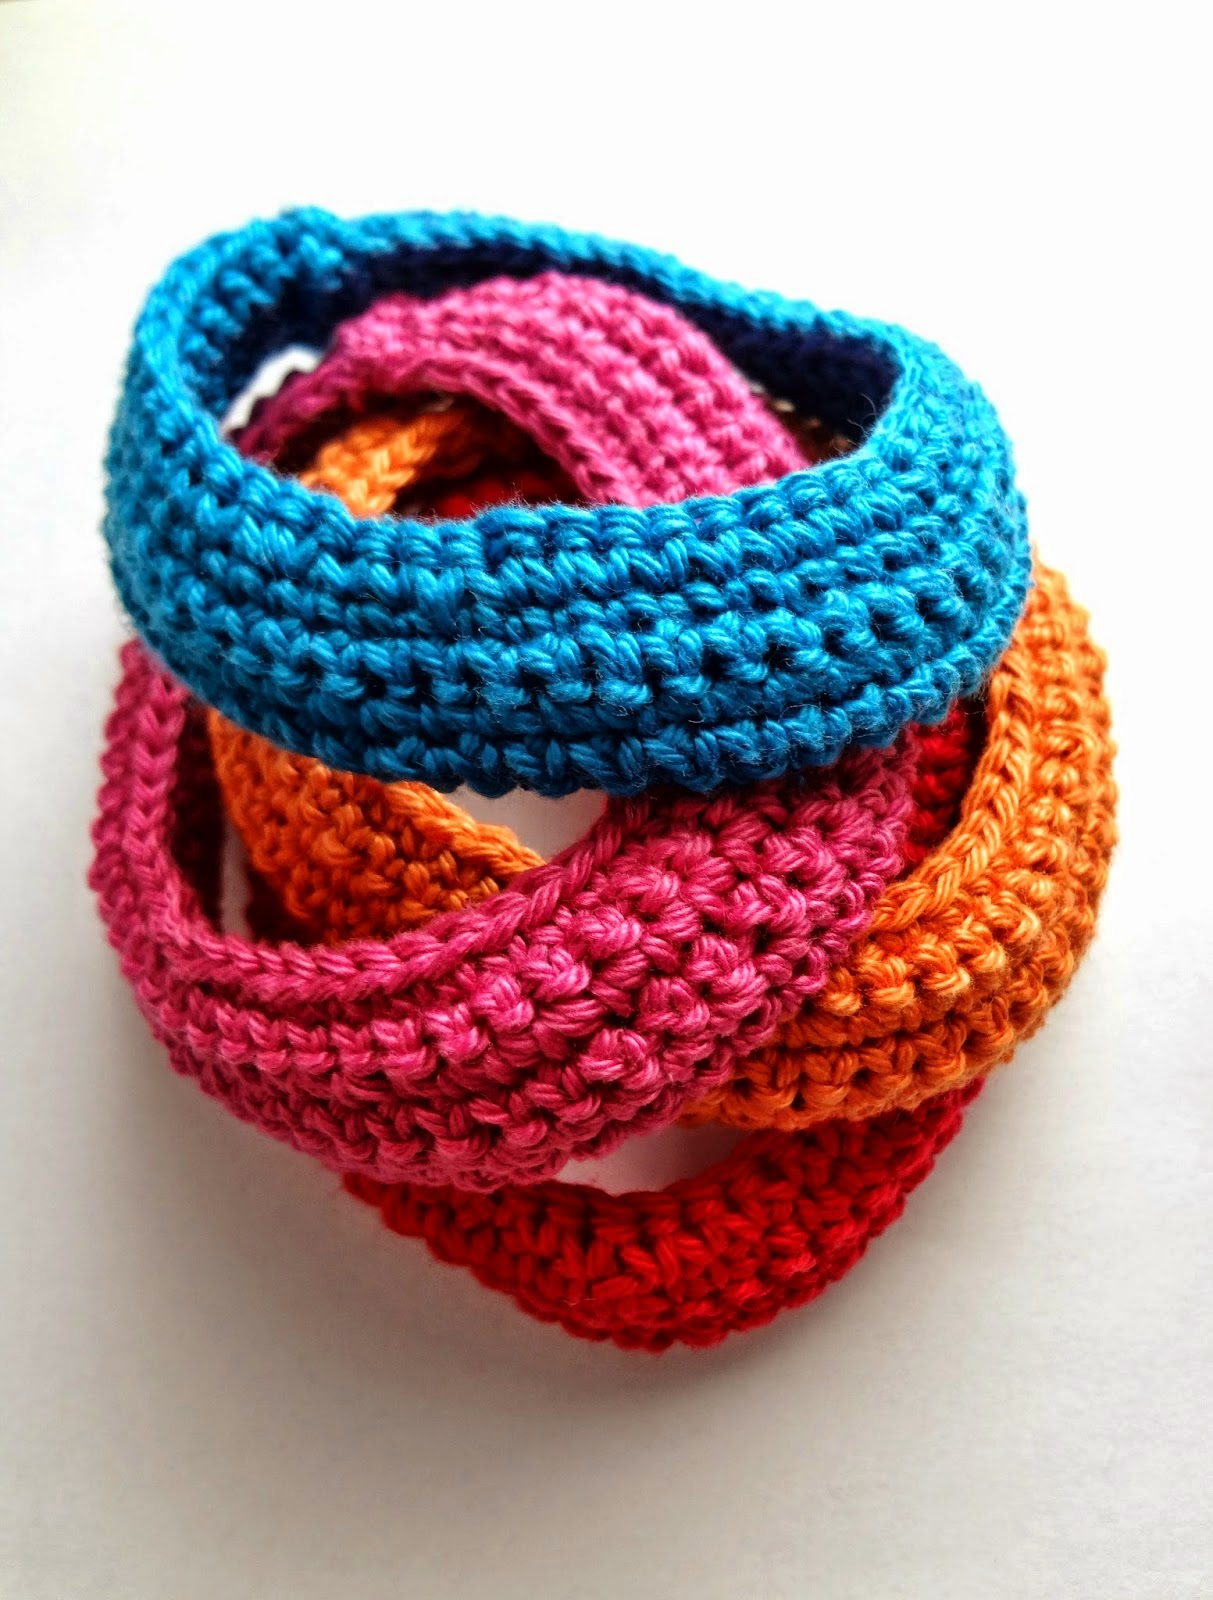 http://thelittletreasures.blogspot.com/2014/06/crocheted-summer-bracelets-free-tutorial.html